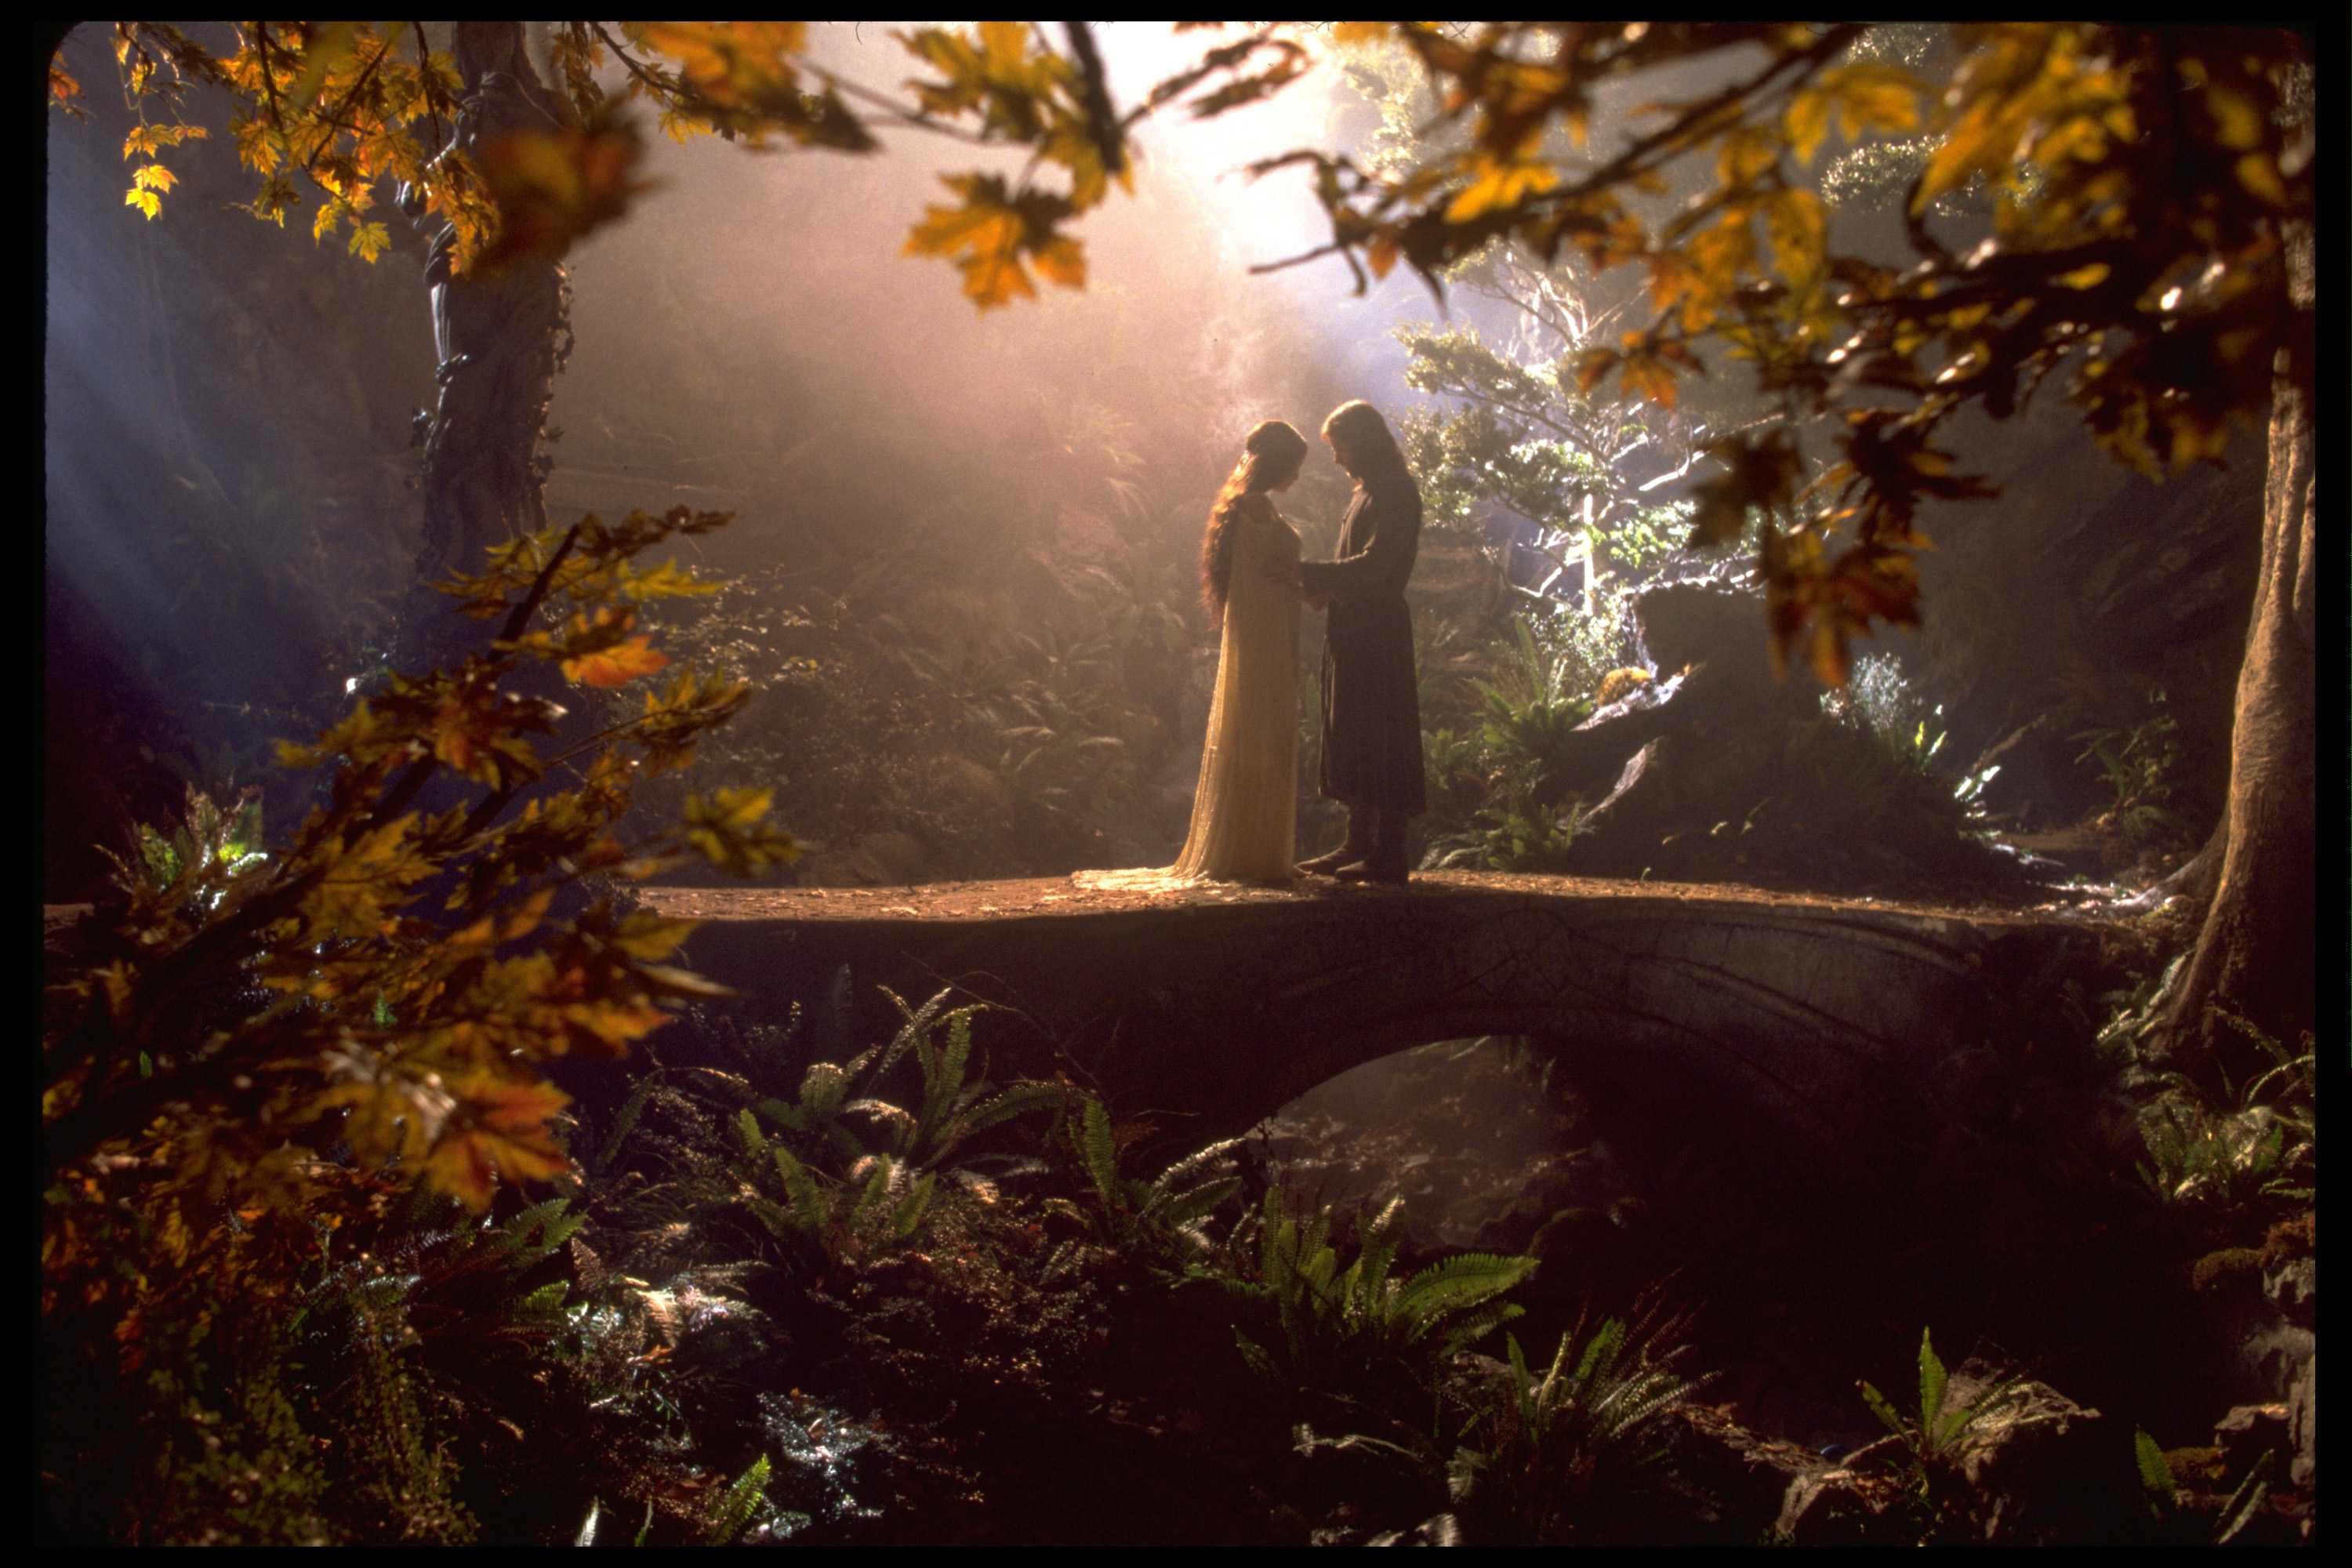 Academy Award? nominees Grant Major for Best Art Direction and Dan Hennah for Best Set Decoration in New Line Cinema's epic adventure,  The Lord of the Rings: The Fellowship of the Ring.  (Photo by New Line/WireImage)